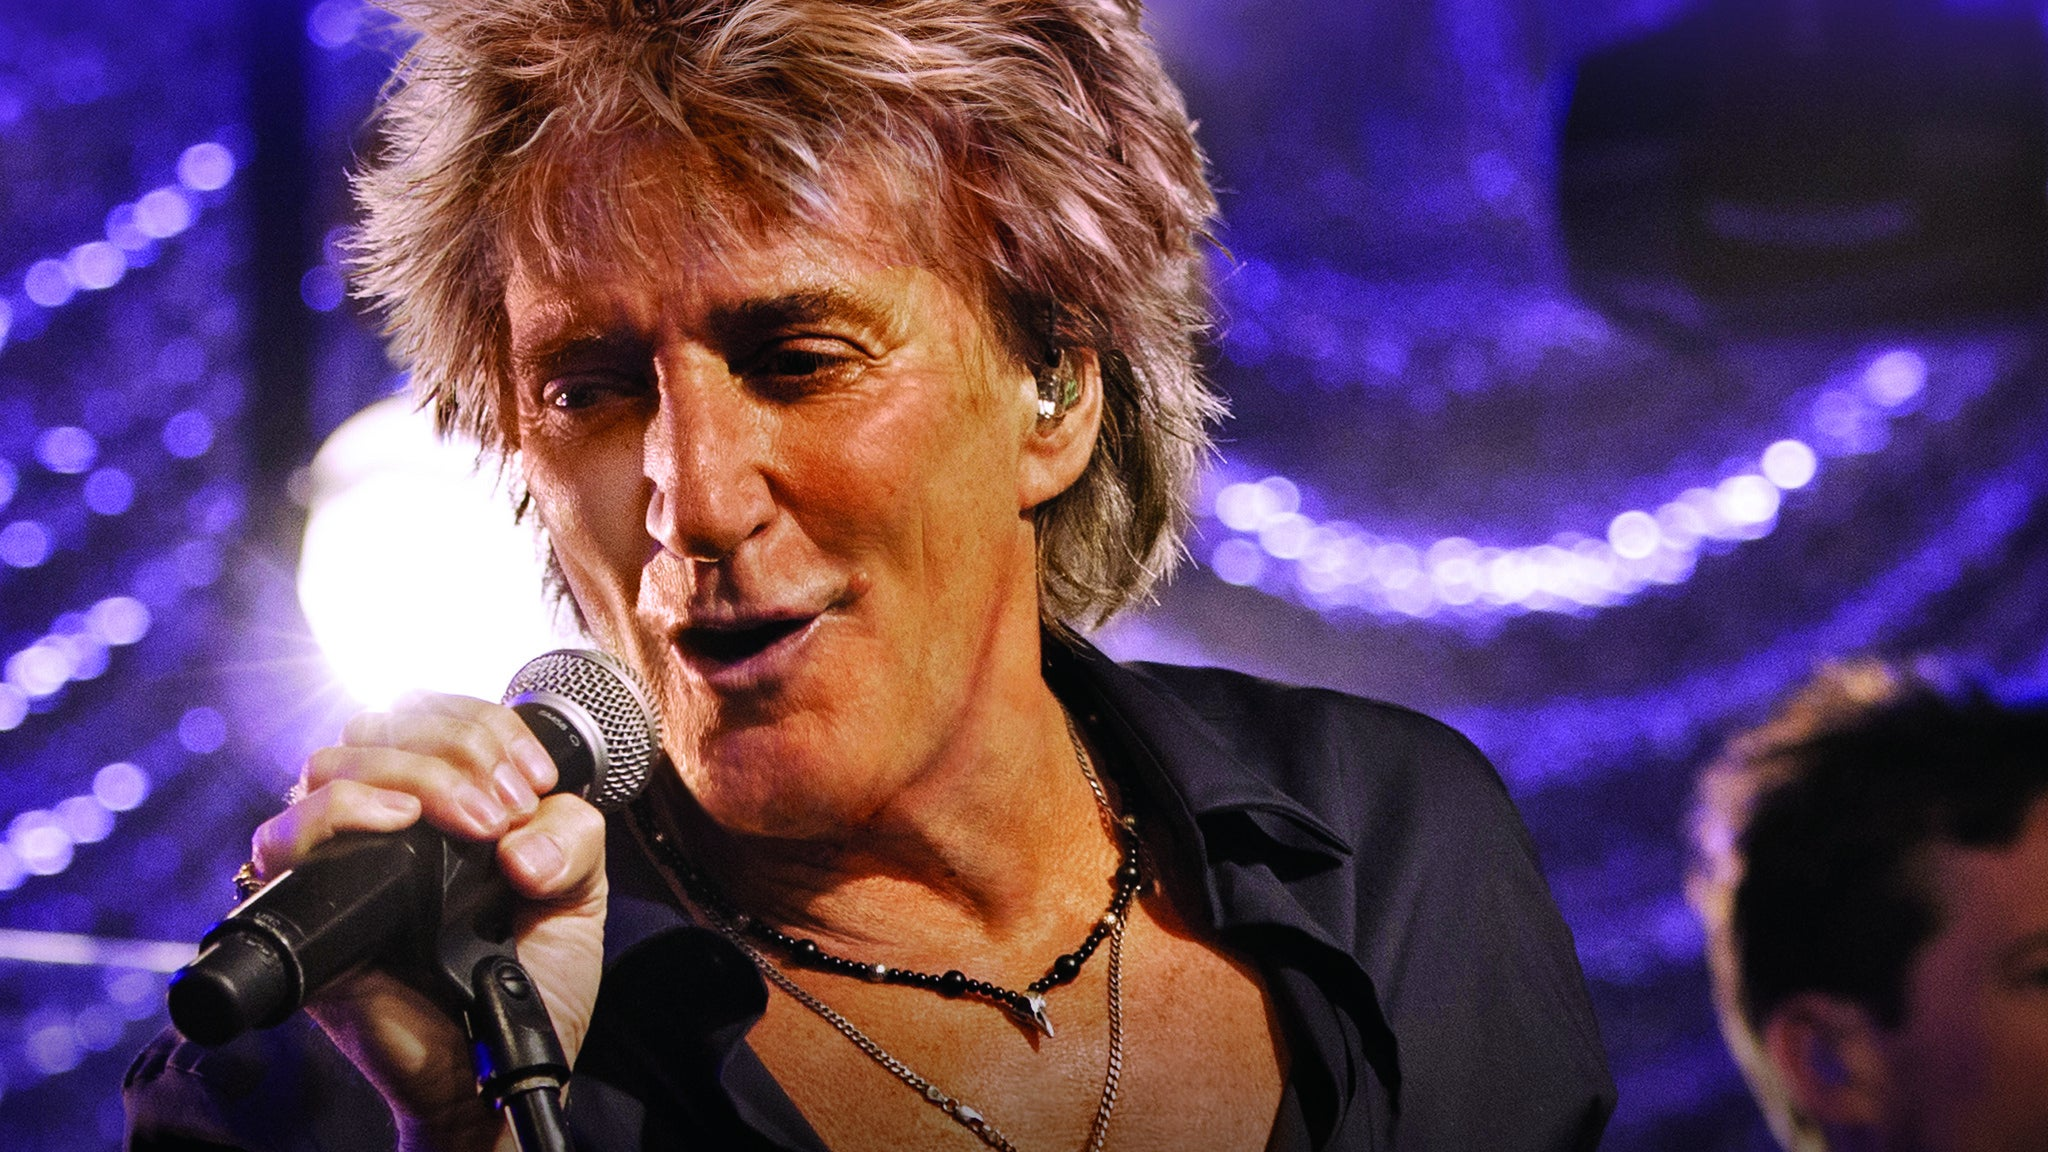 Rod Stewart W/ Special Guest Cyndi Lauper at Boardwalk Hall